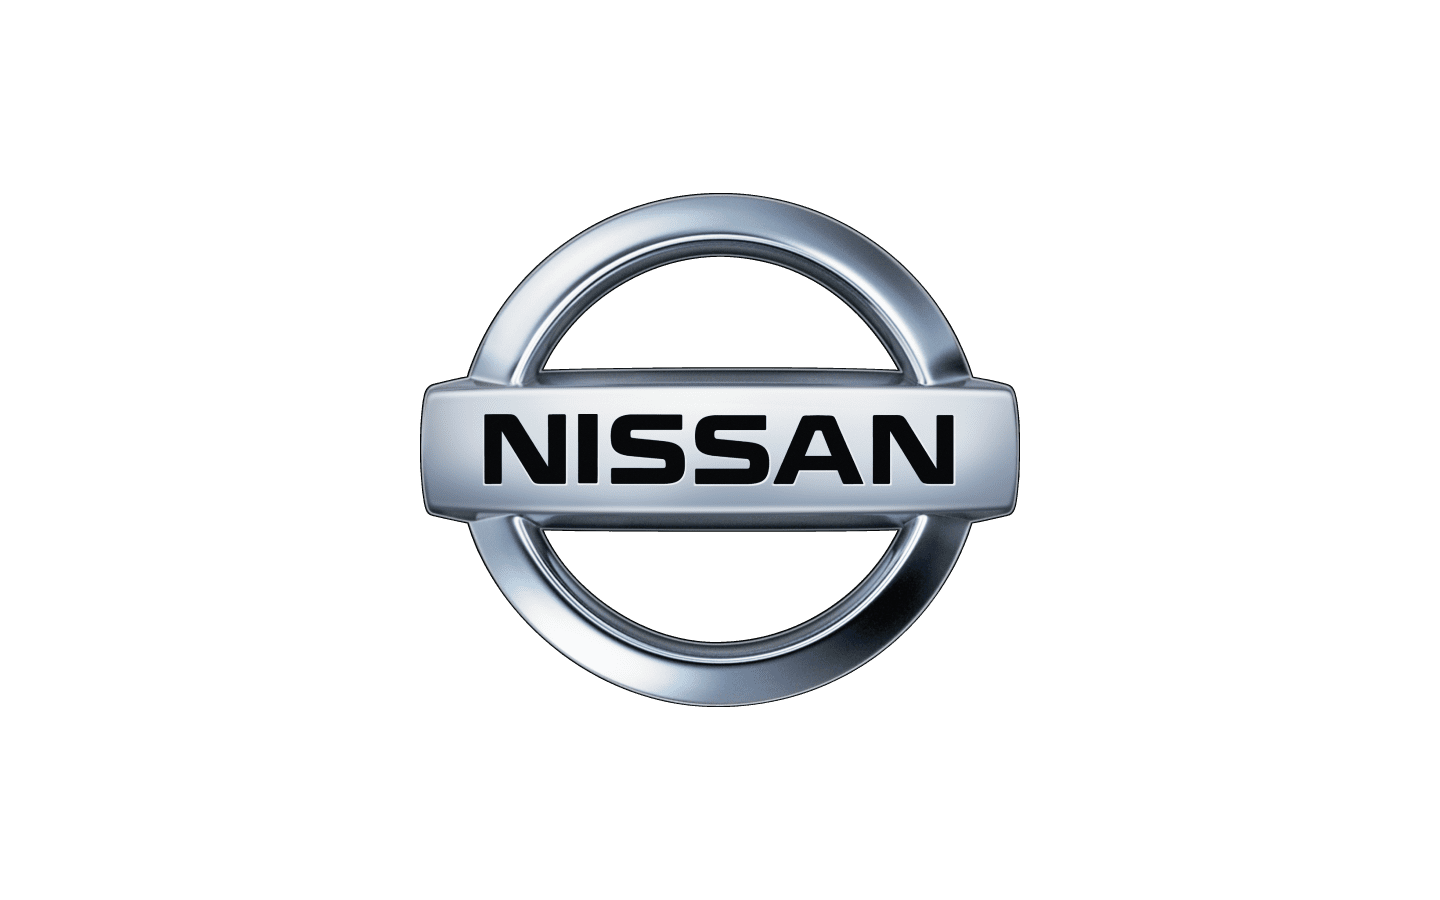 Nissan Auto Gearbox Repair